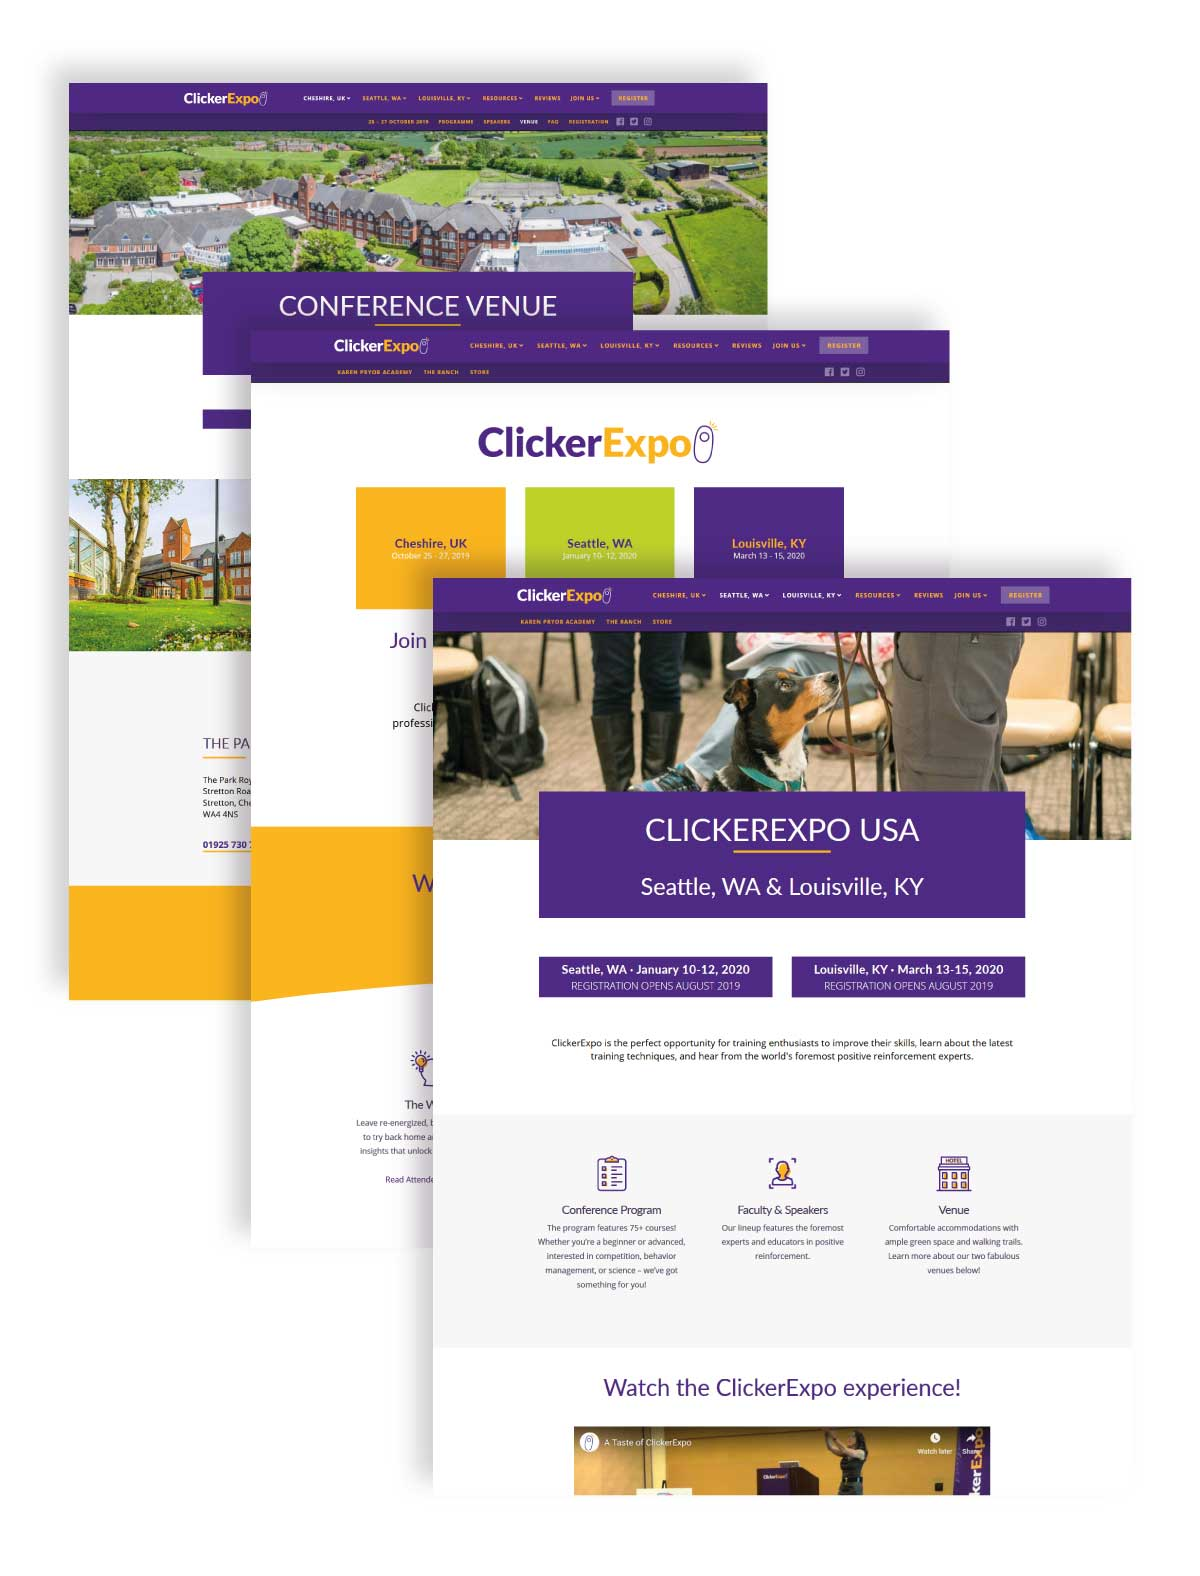 Web design pages for Clicker Expo